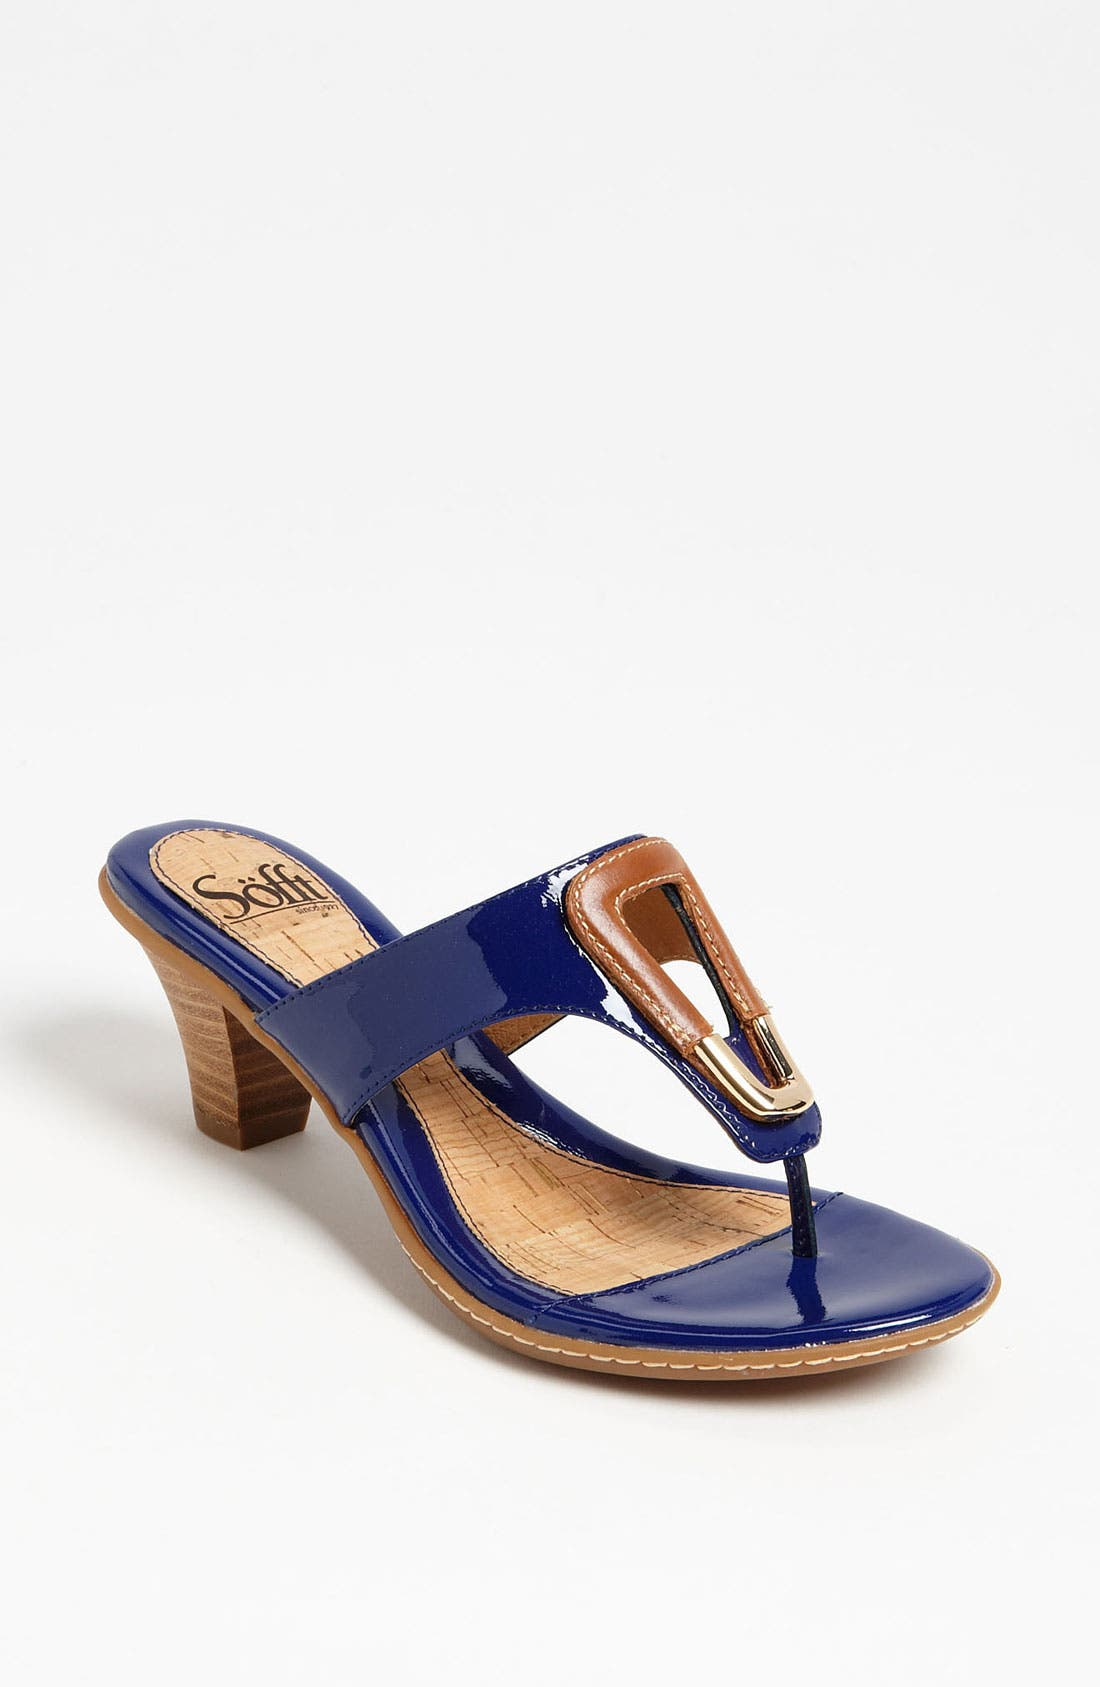 Alternate Image 1 Selected - Söfft 'Raphaella' Sandal